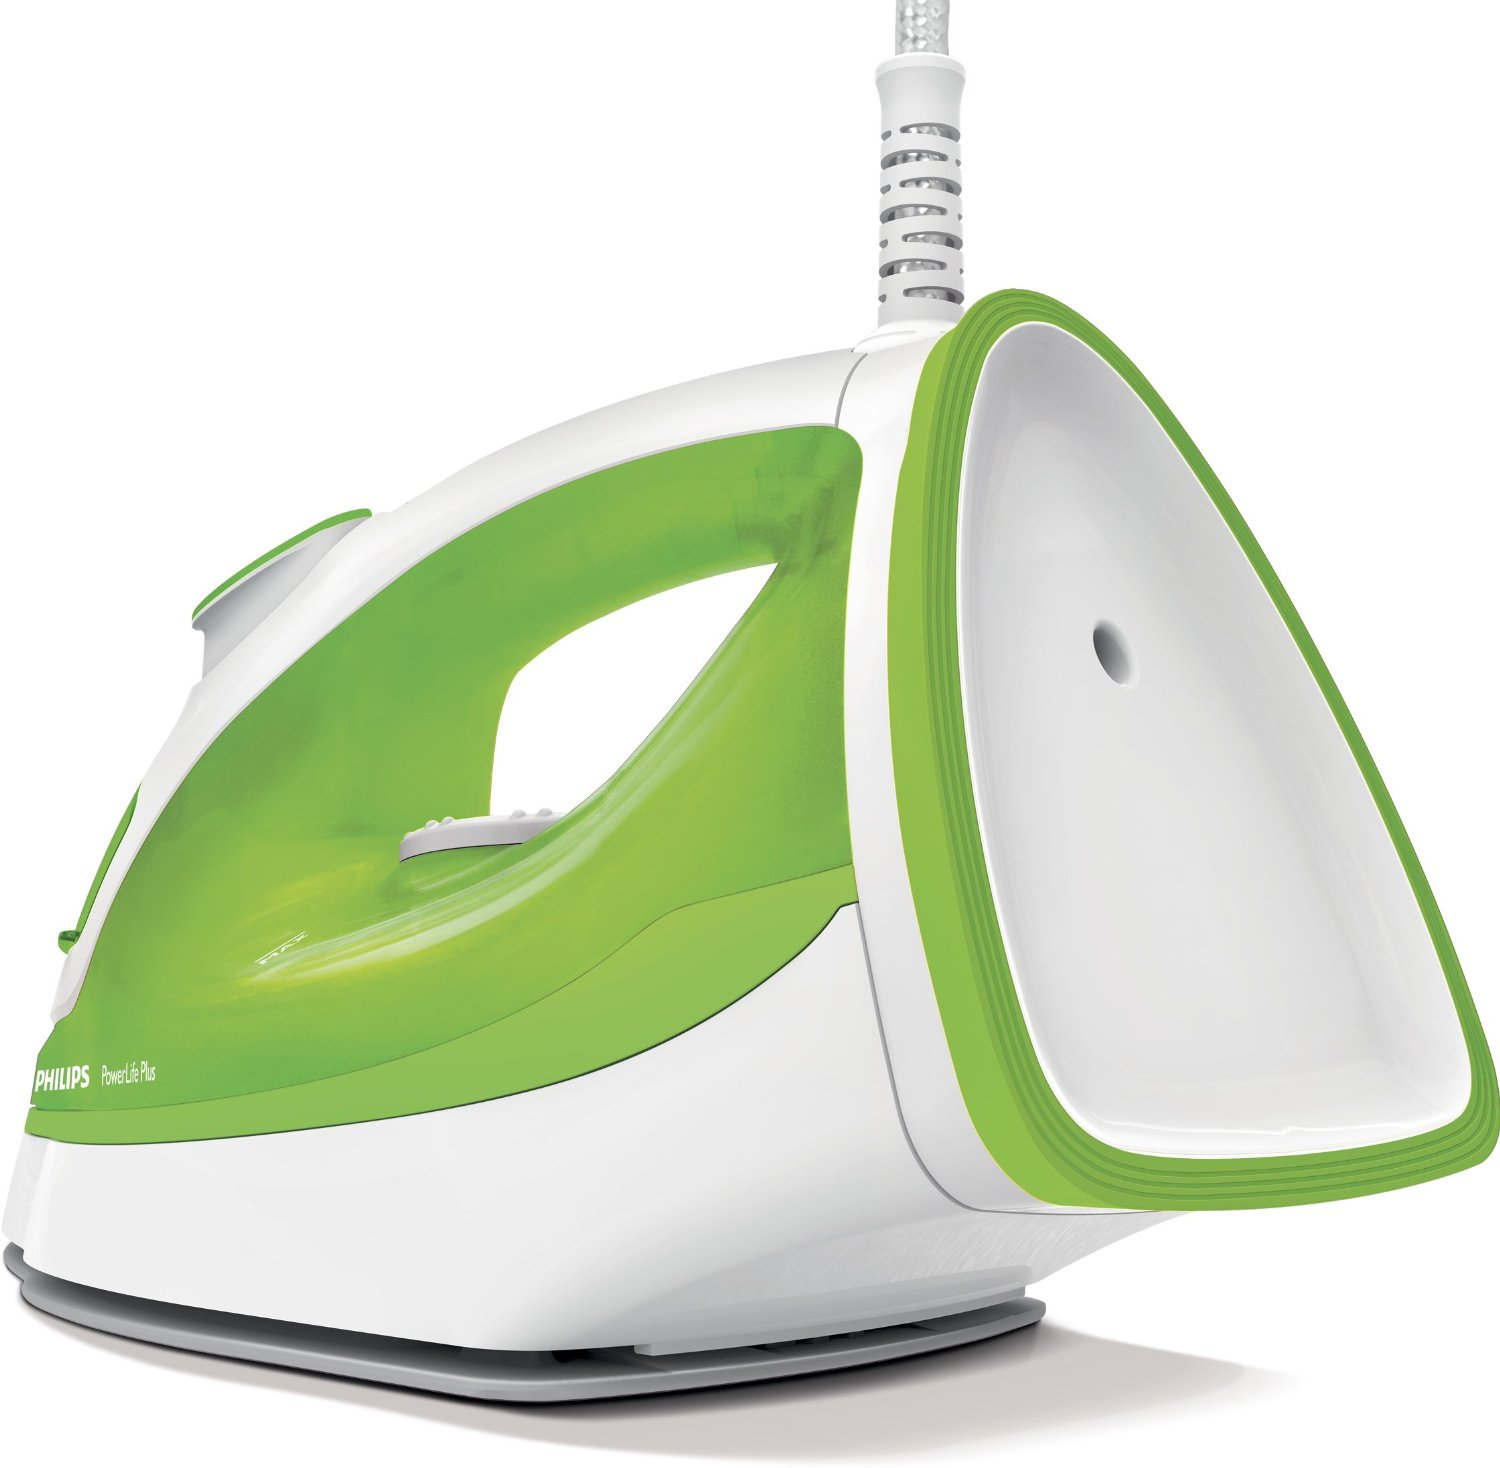 Philips Powerlife Plus Gc2988 Steam Iron 29 By Garment Steamer Gc504 No Reviews Yet Be The First To Write Review Earn 10 Points